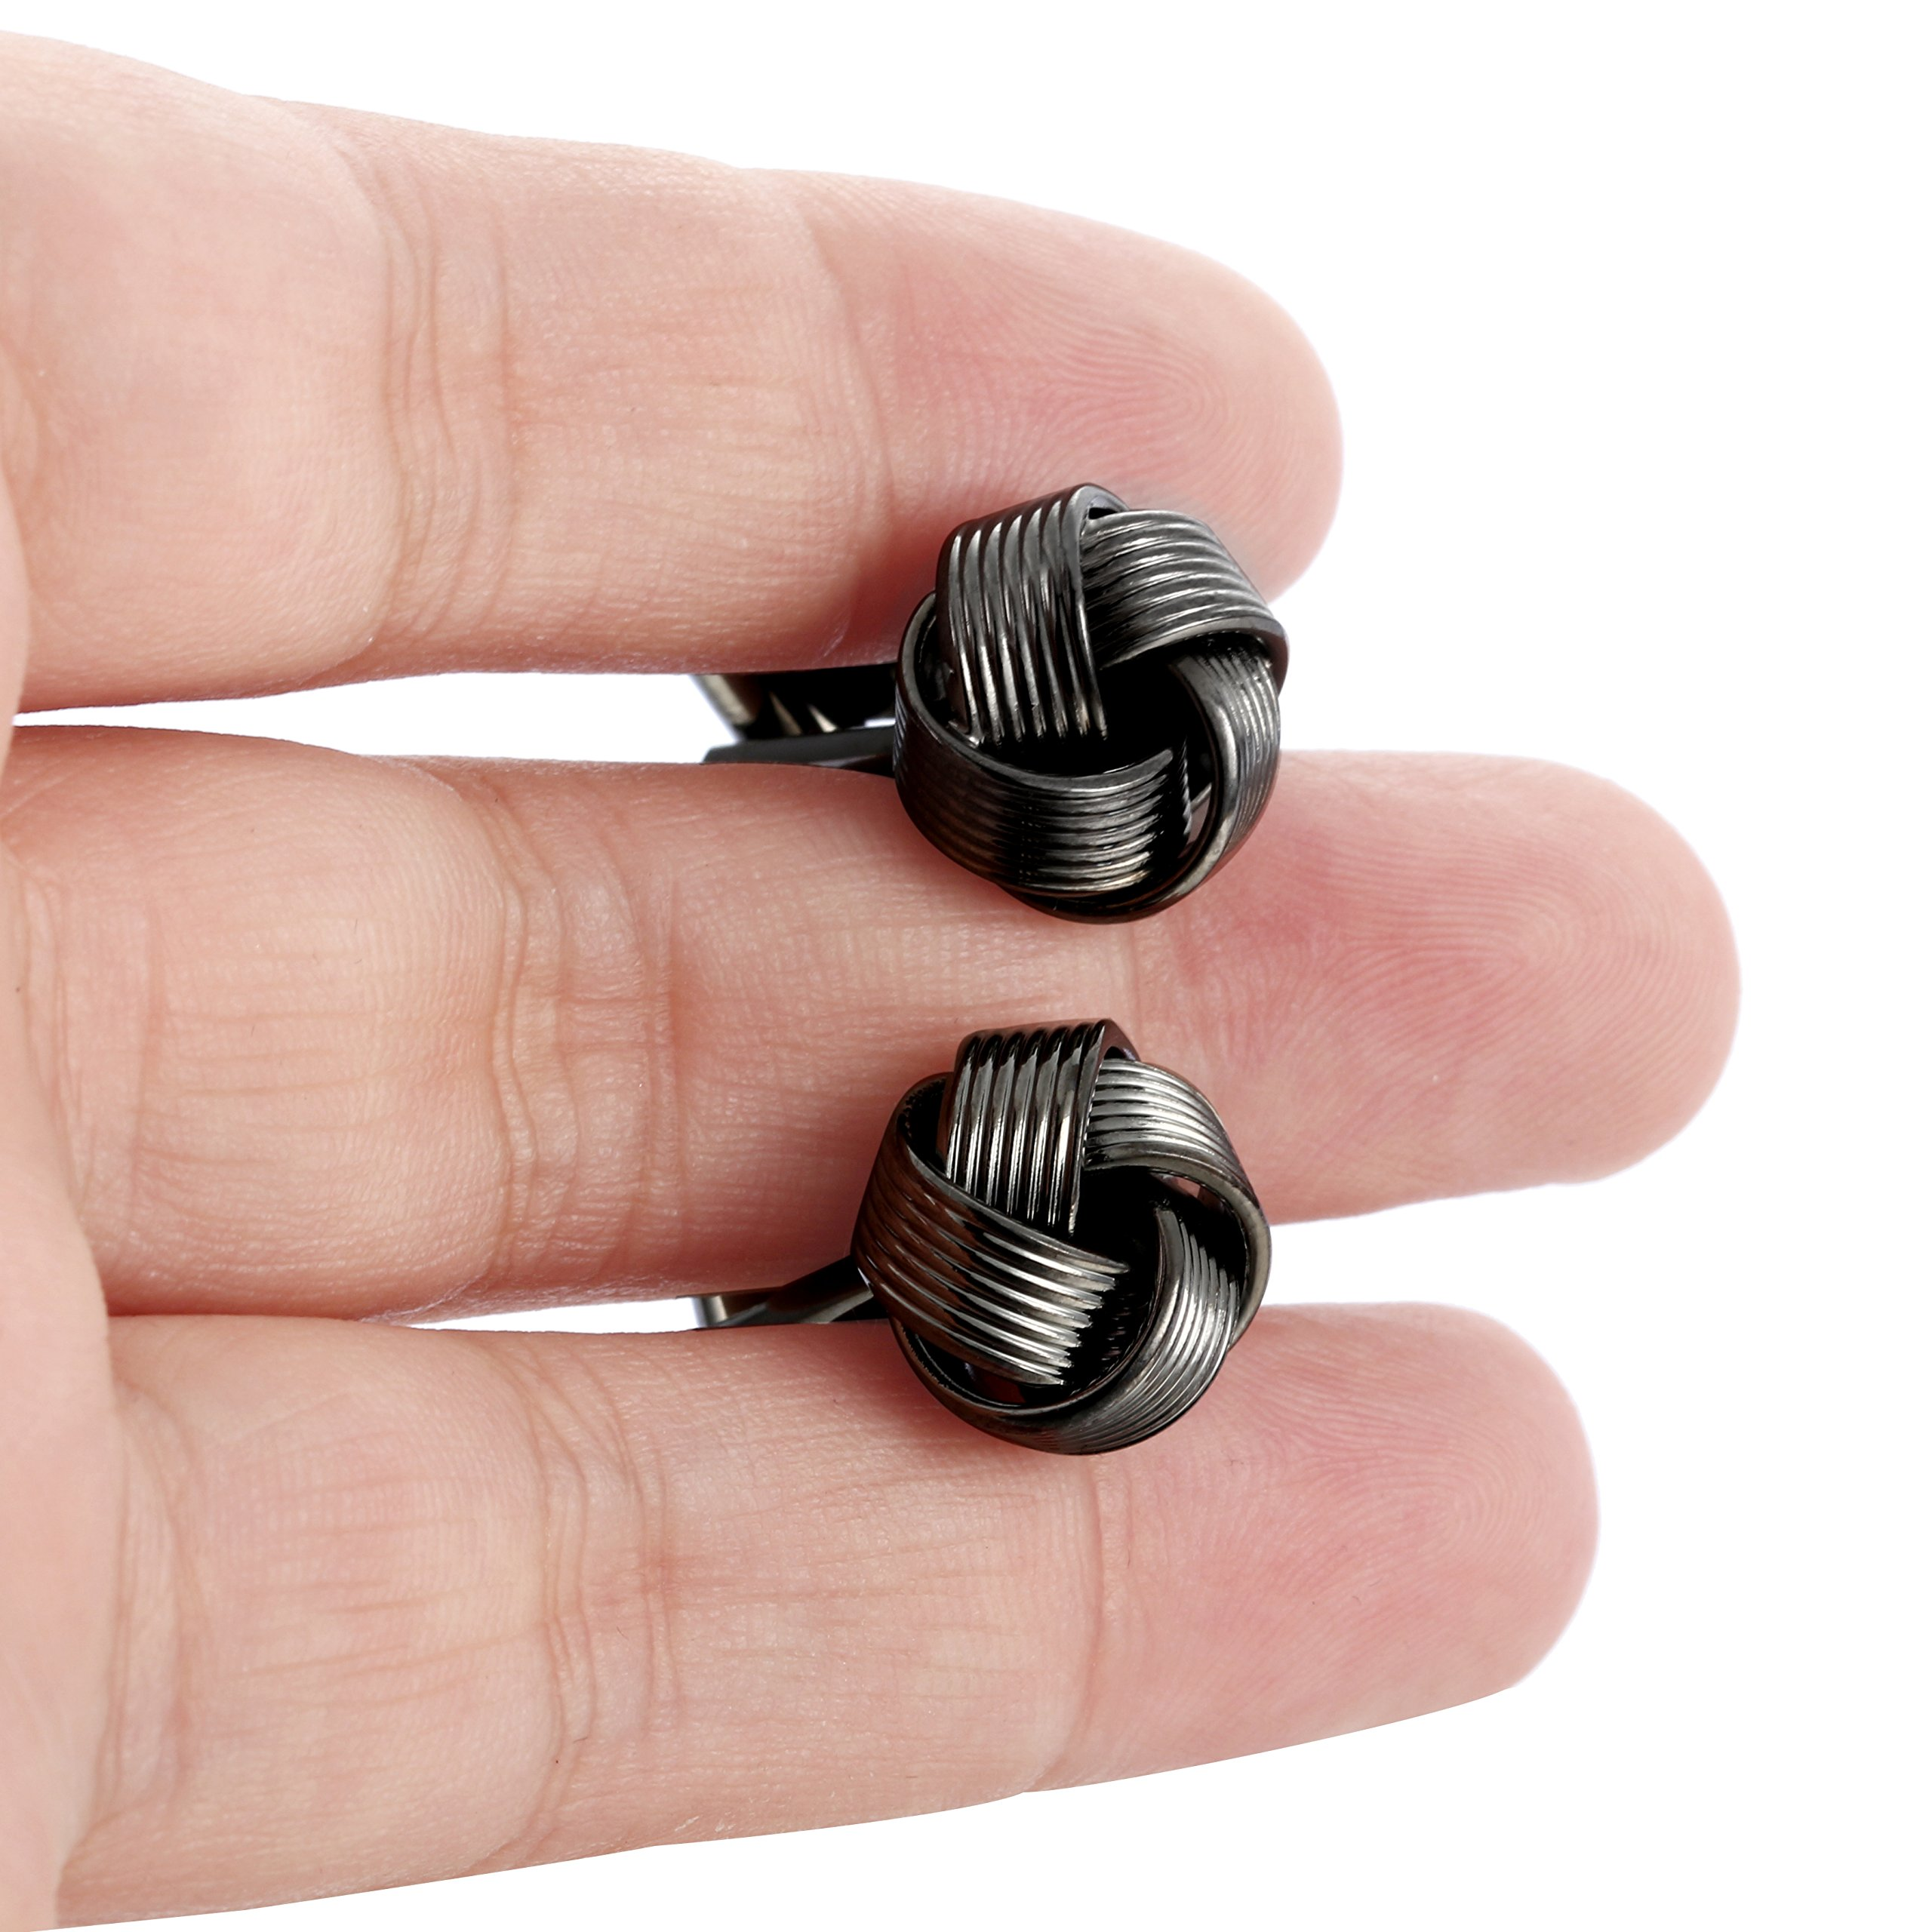 Jstyle Knot Cufflinks for Men Shirt Cufflinks Black Silver Tone Unique Business Wedding by Jstyle (Image #5)